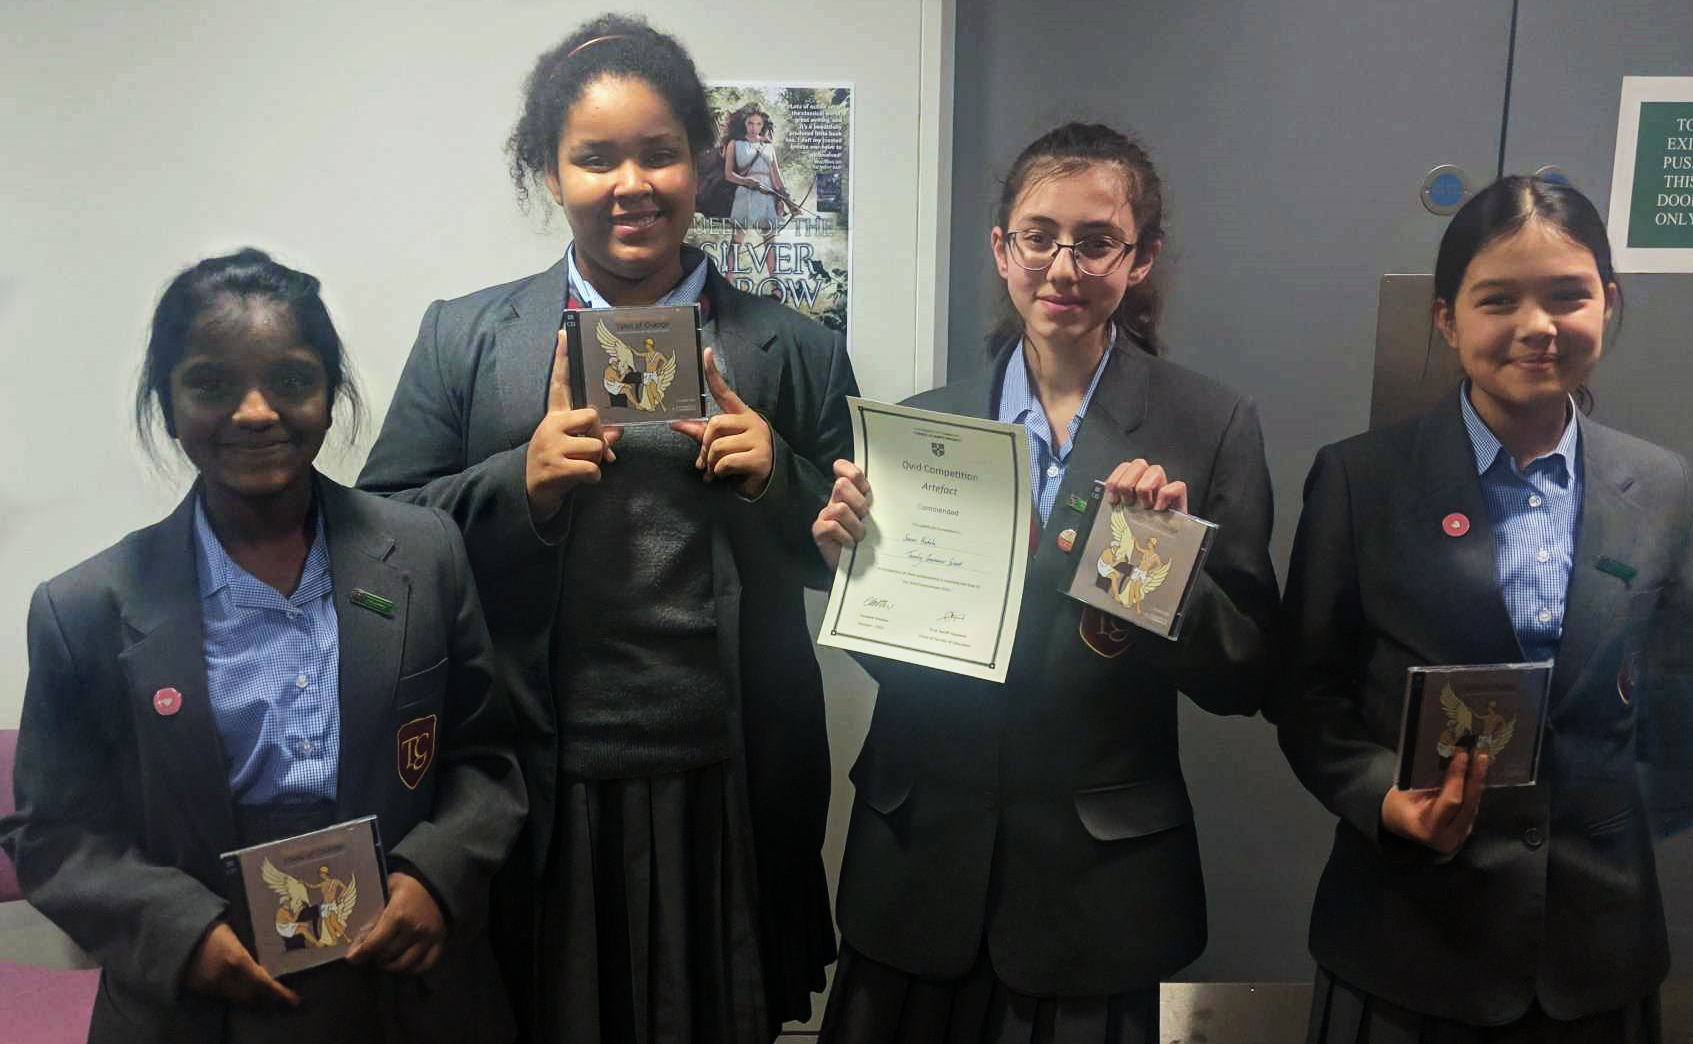 Four students holding certificates and prizes